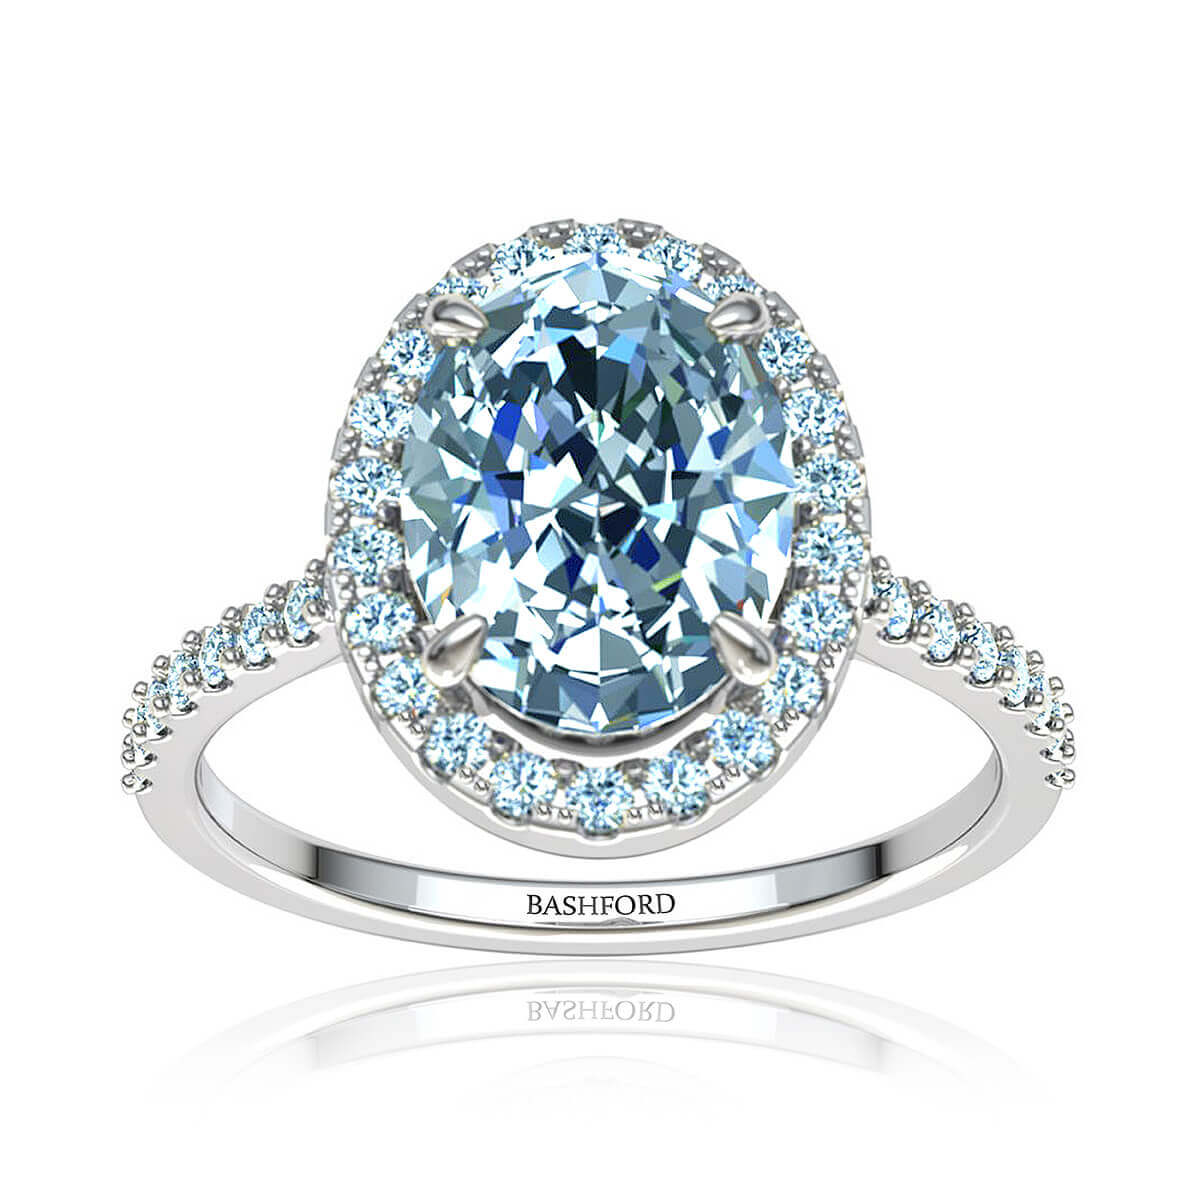 Solana Diamond Ring (with VS2, F, 7/8 Carat Oval Diamond)